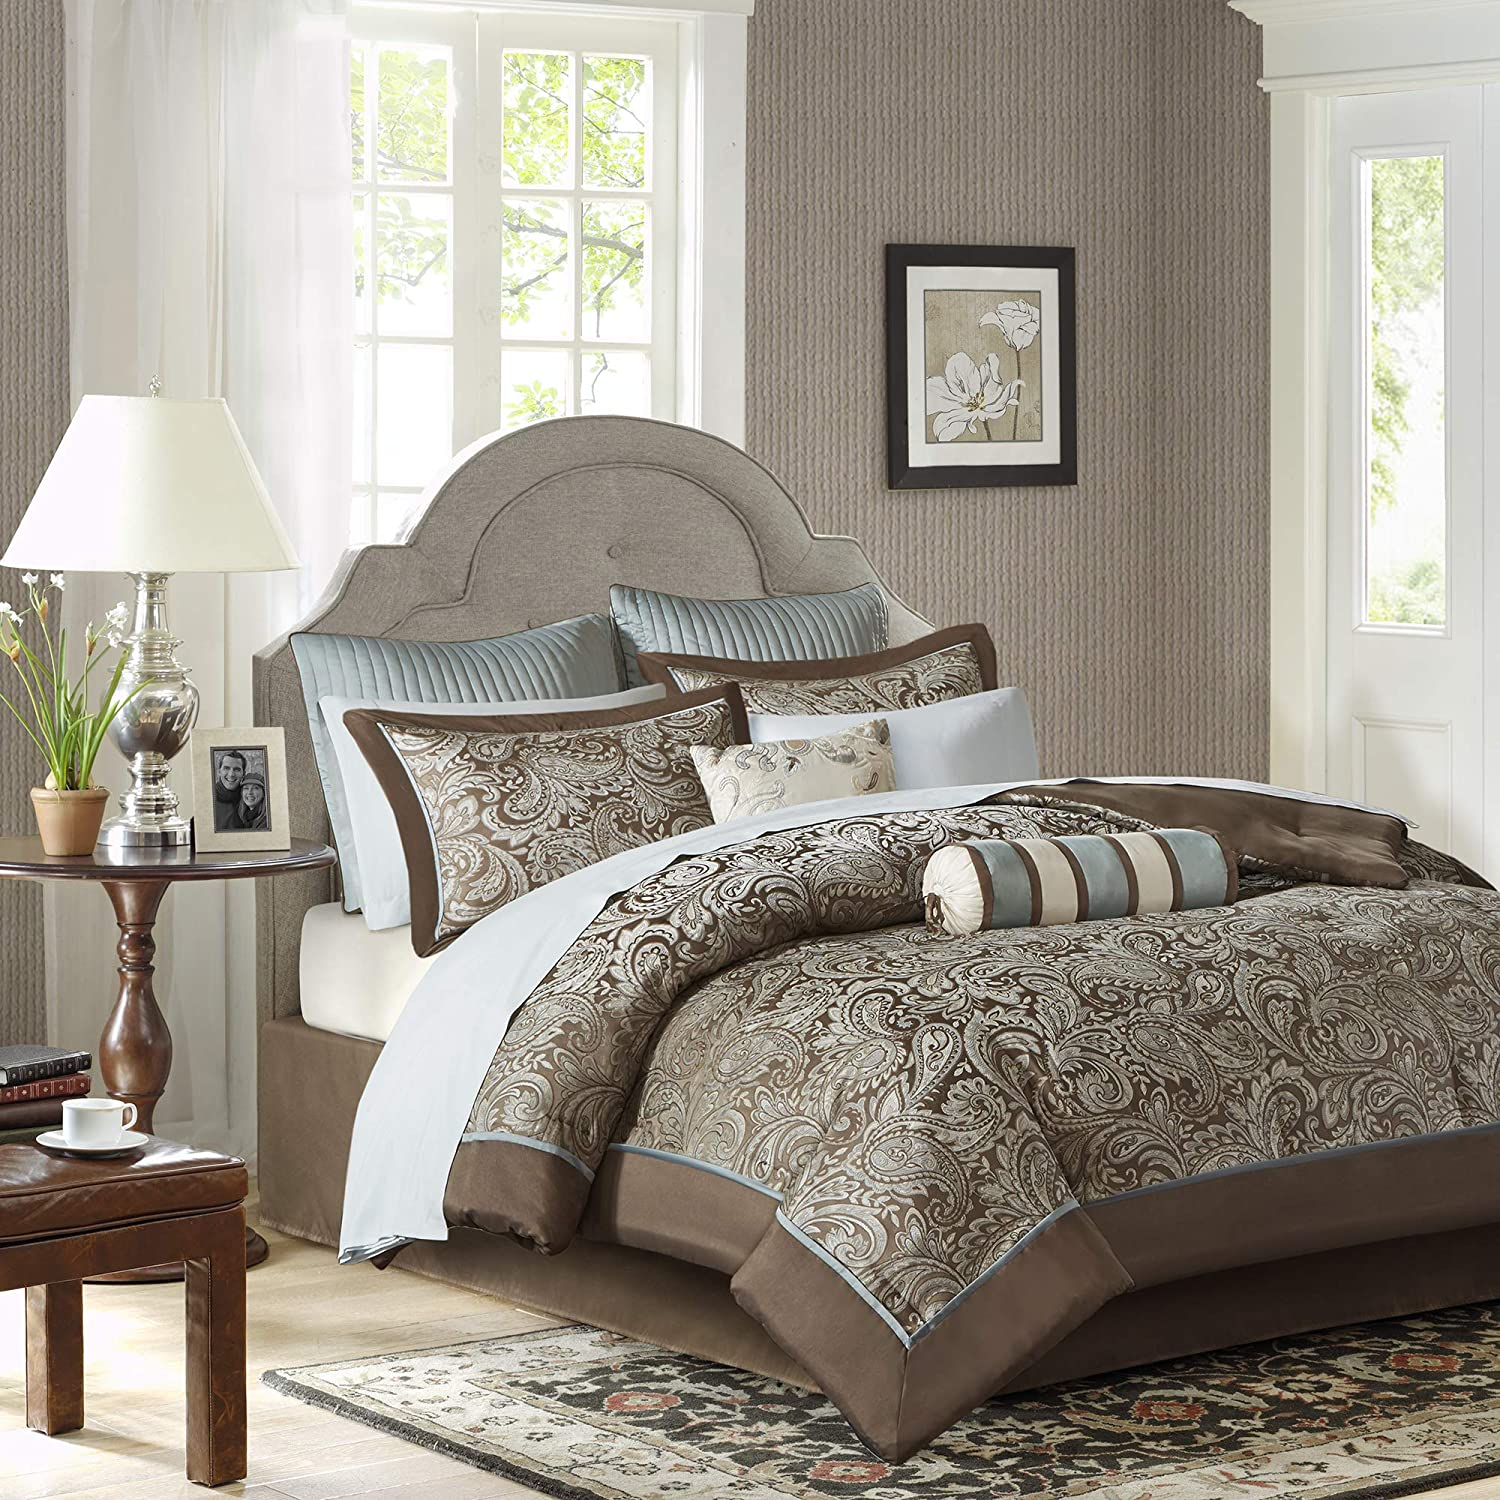 Amazon.com: Madison Park Aubrey Queen Size Bed Comforter Set Bed